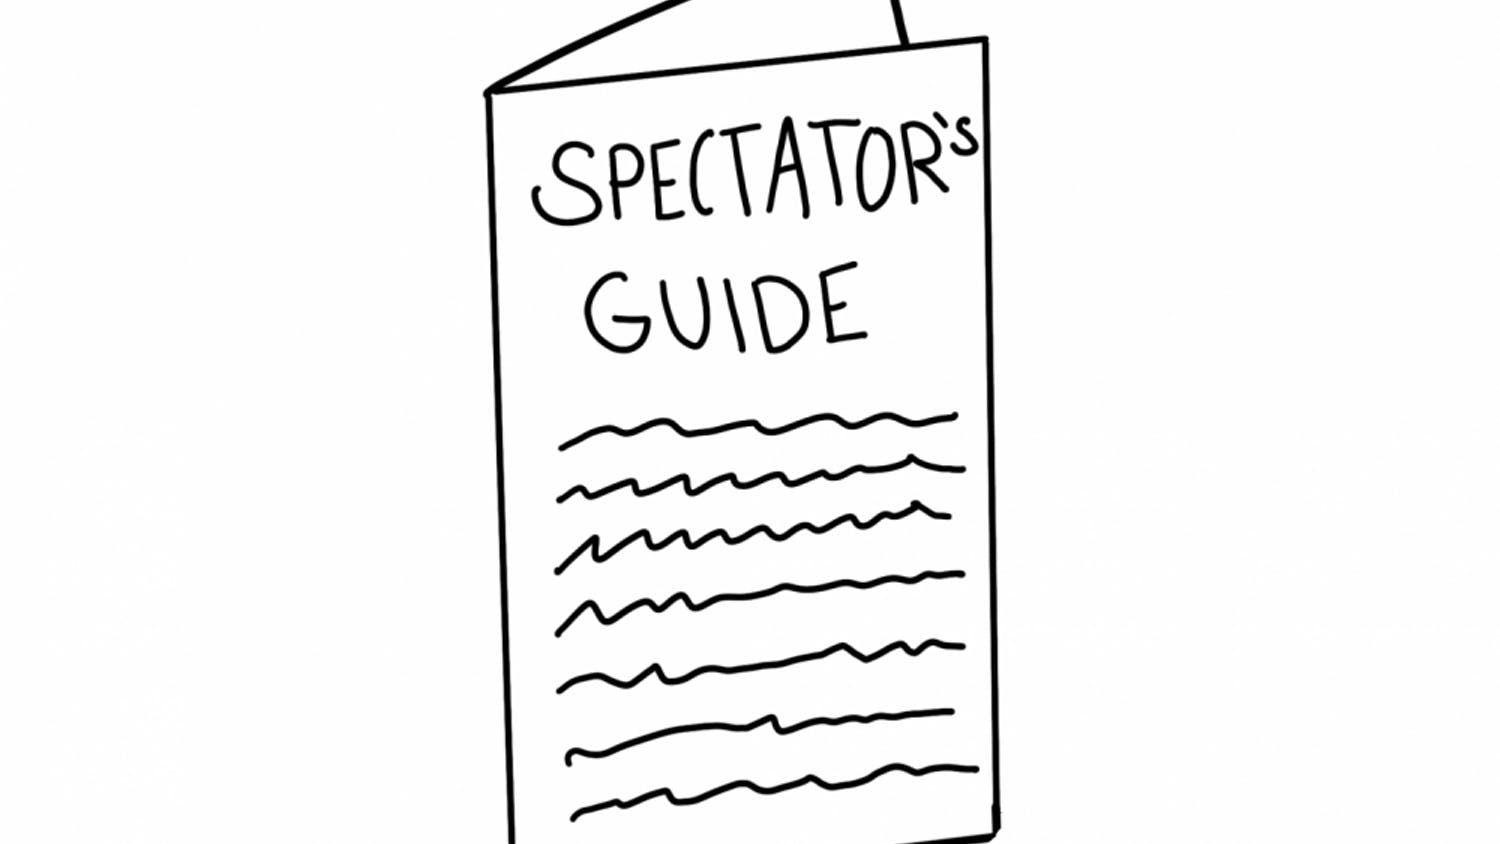 Spectators_guide_by_Sabrina_Templeton